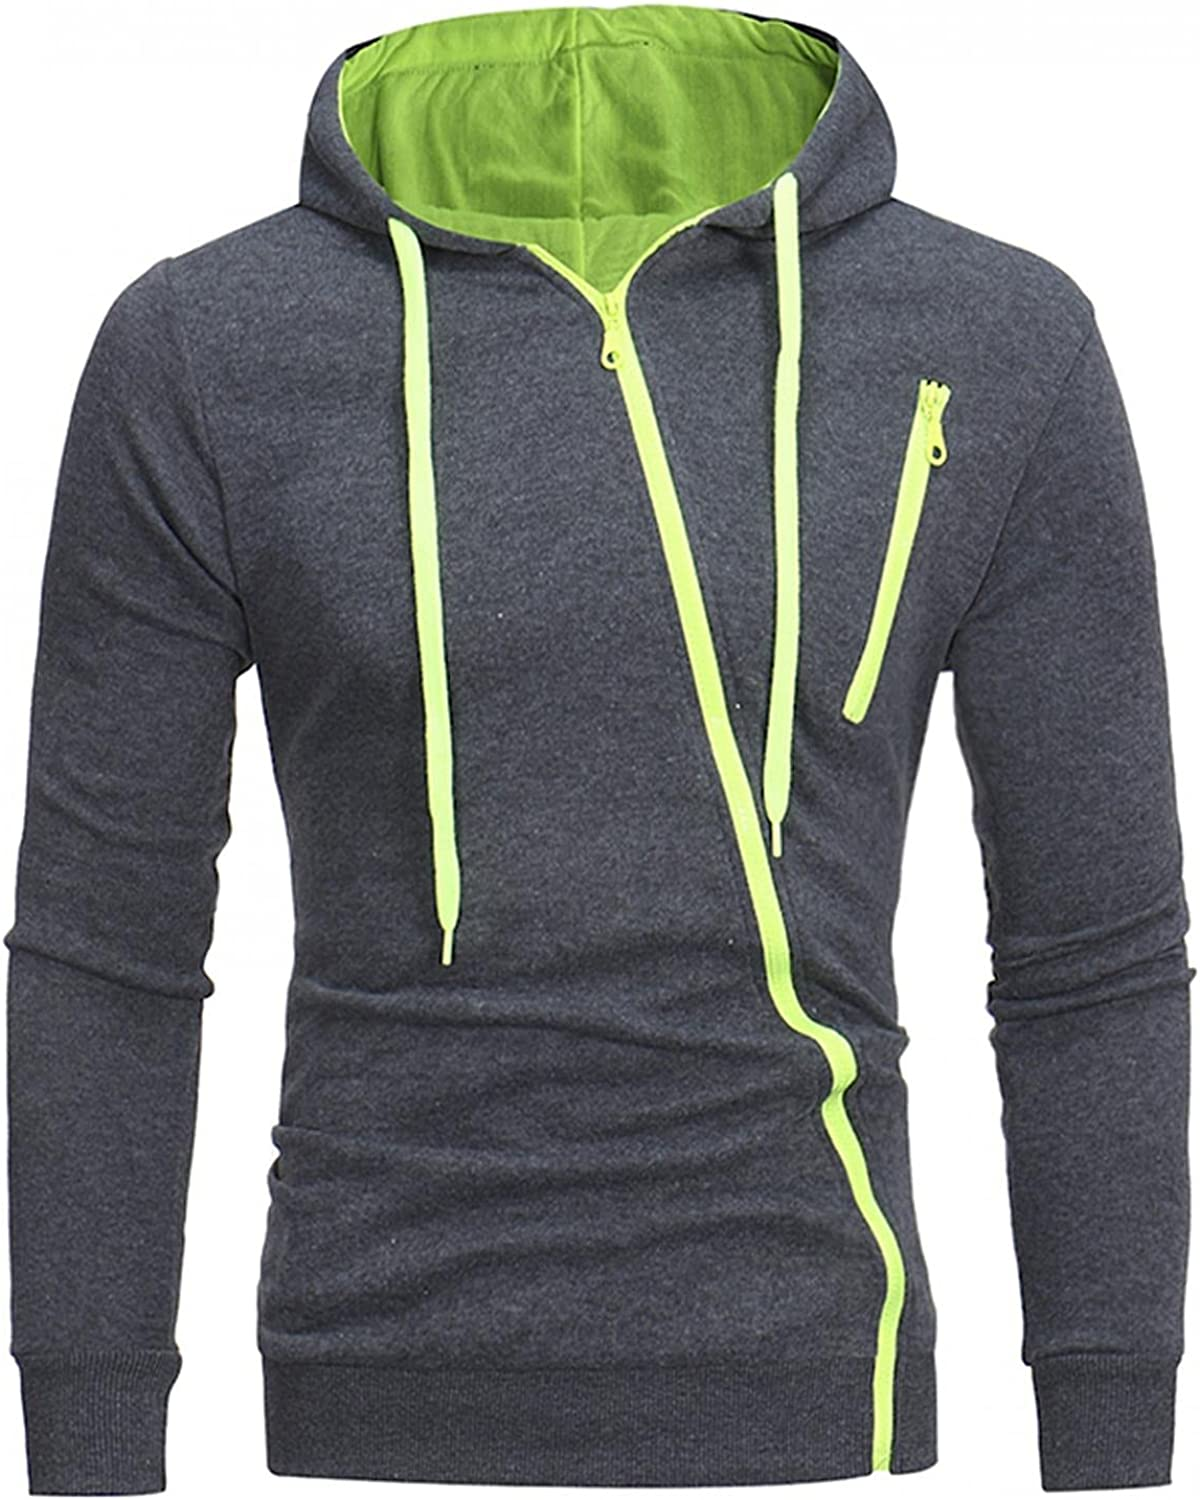 Mens Hoodies Zip Up Warm Casual Quick Dry Big and Tall Long Sleeve Hooded Shirts Fashion Outwear Mens Hoodies